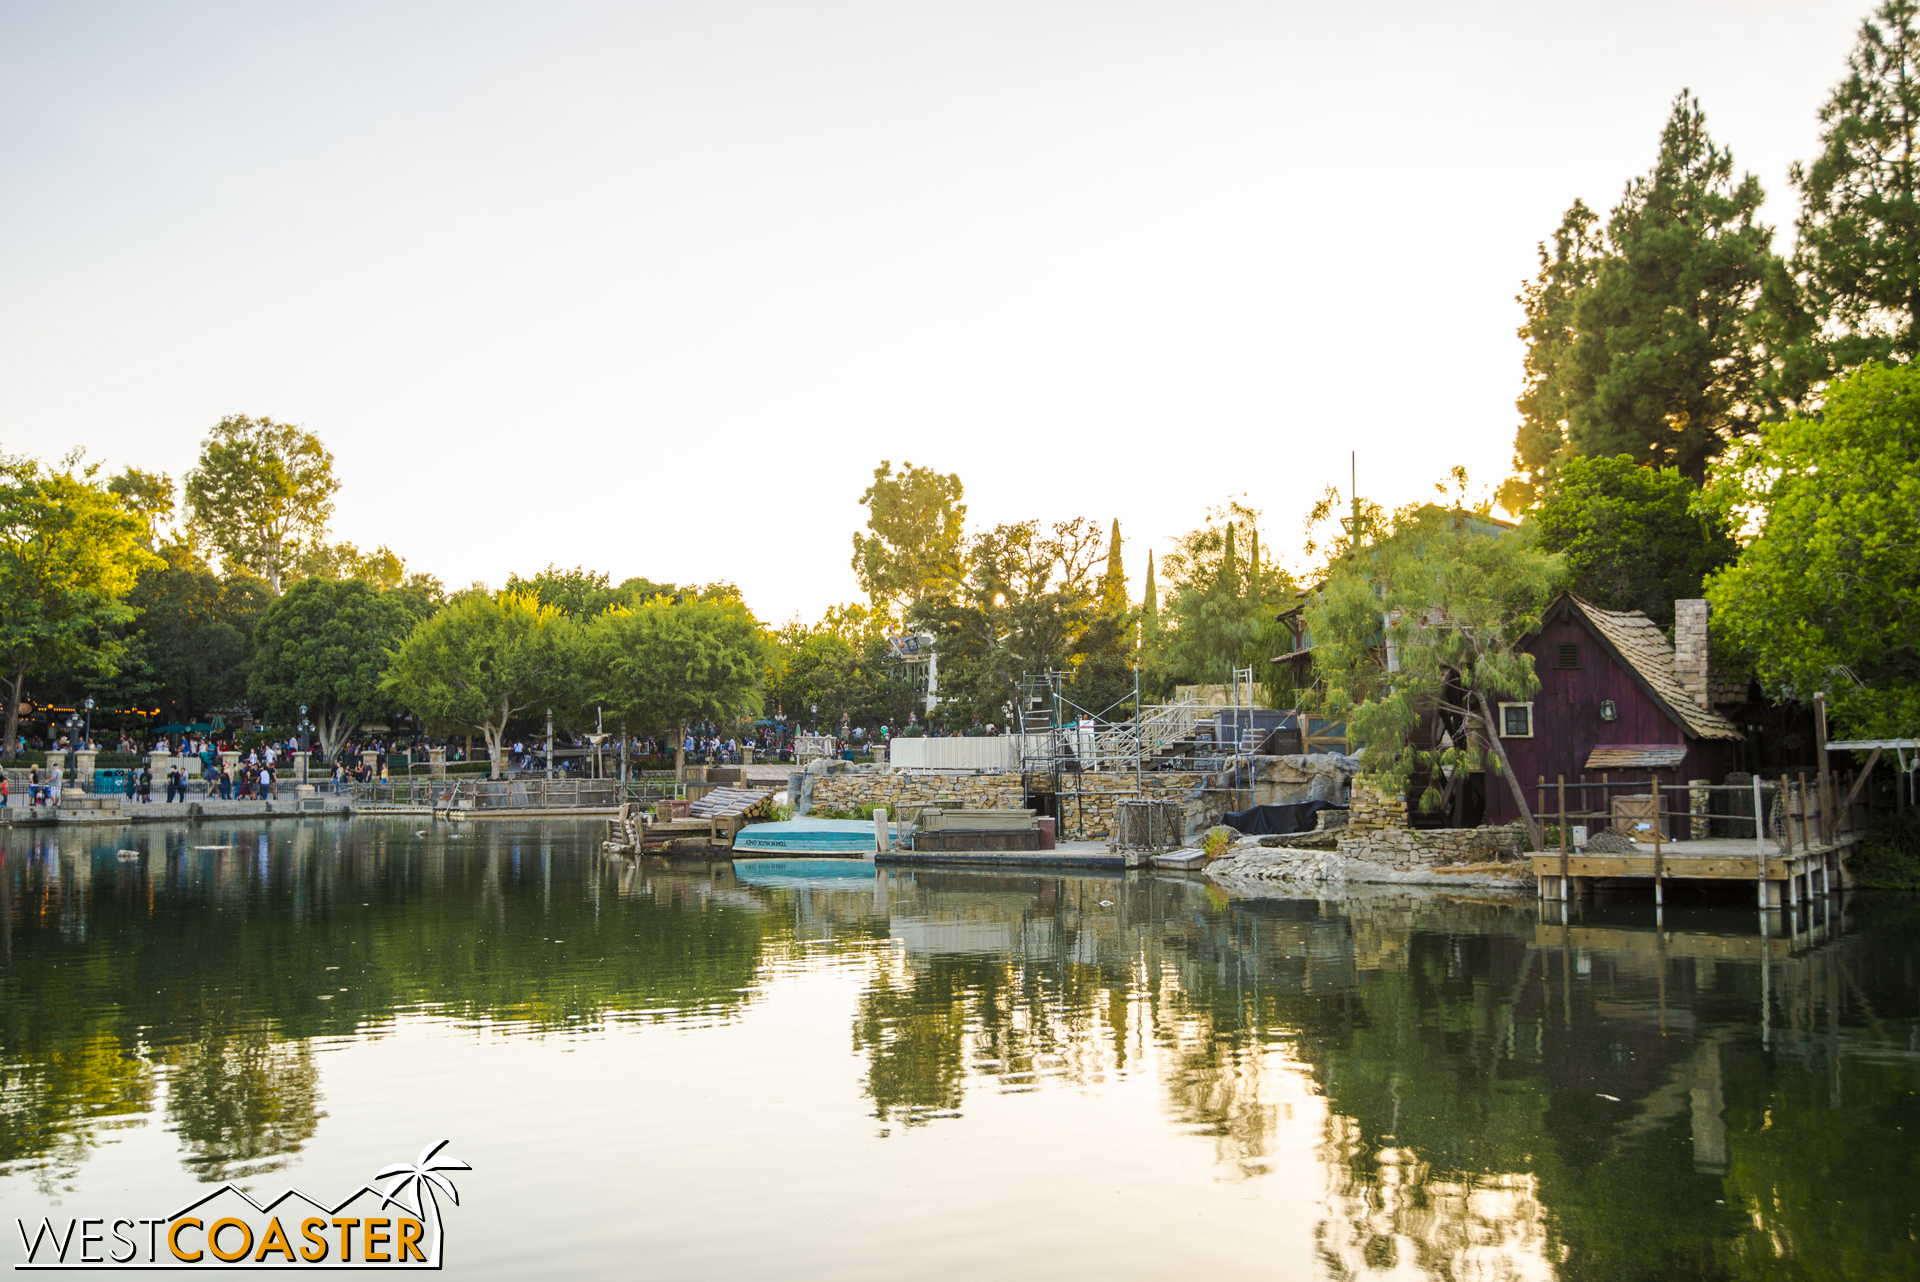 A look at the island from the Big Thunder Mountain side.